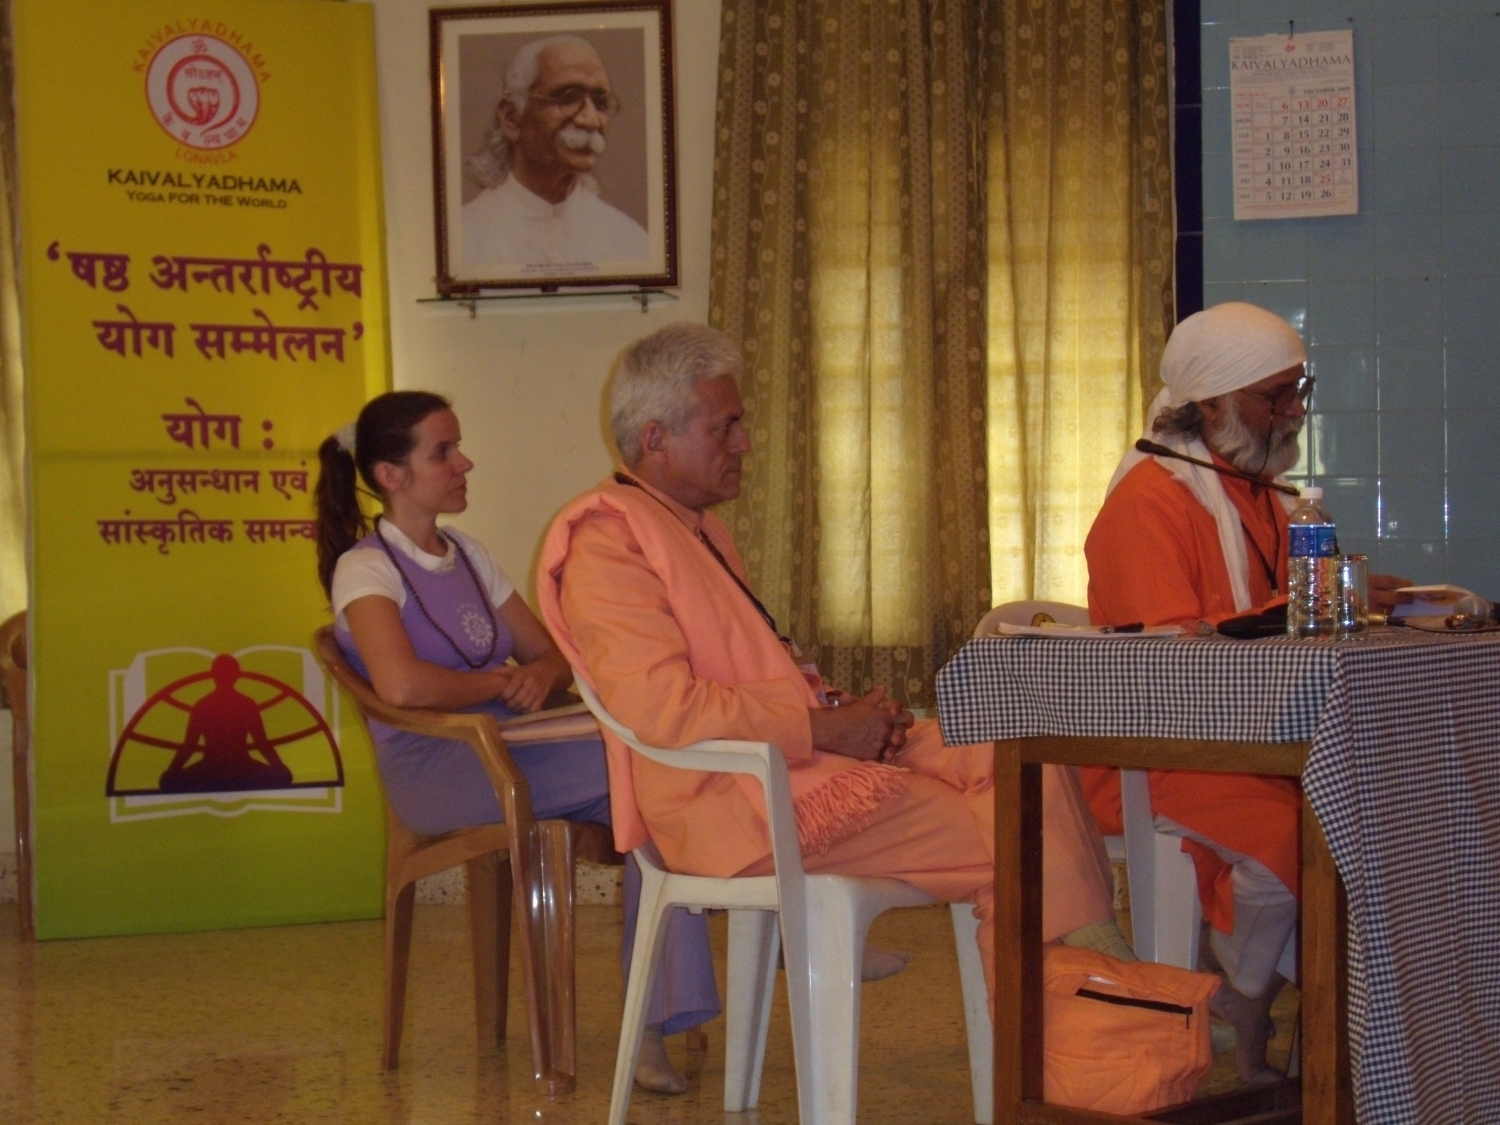 6th International Conference on Yoga, Research and Cultural Synthesis - Keivalyadhama Yoga Institute, Lonavala, Índia - 2009, Dezembro